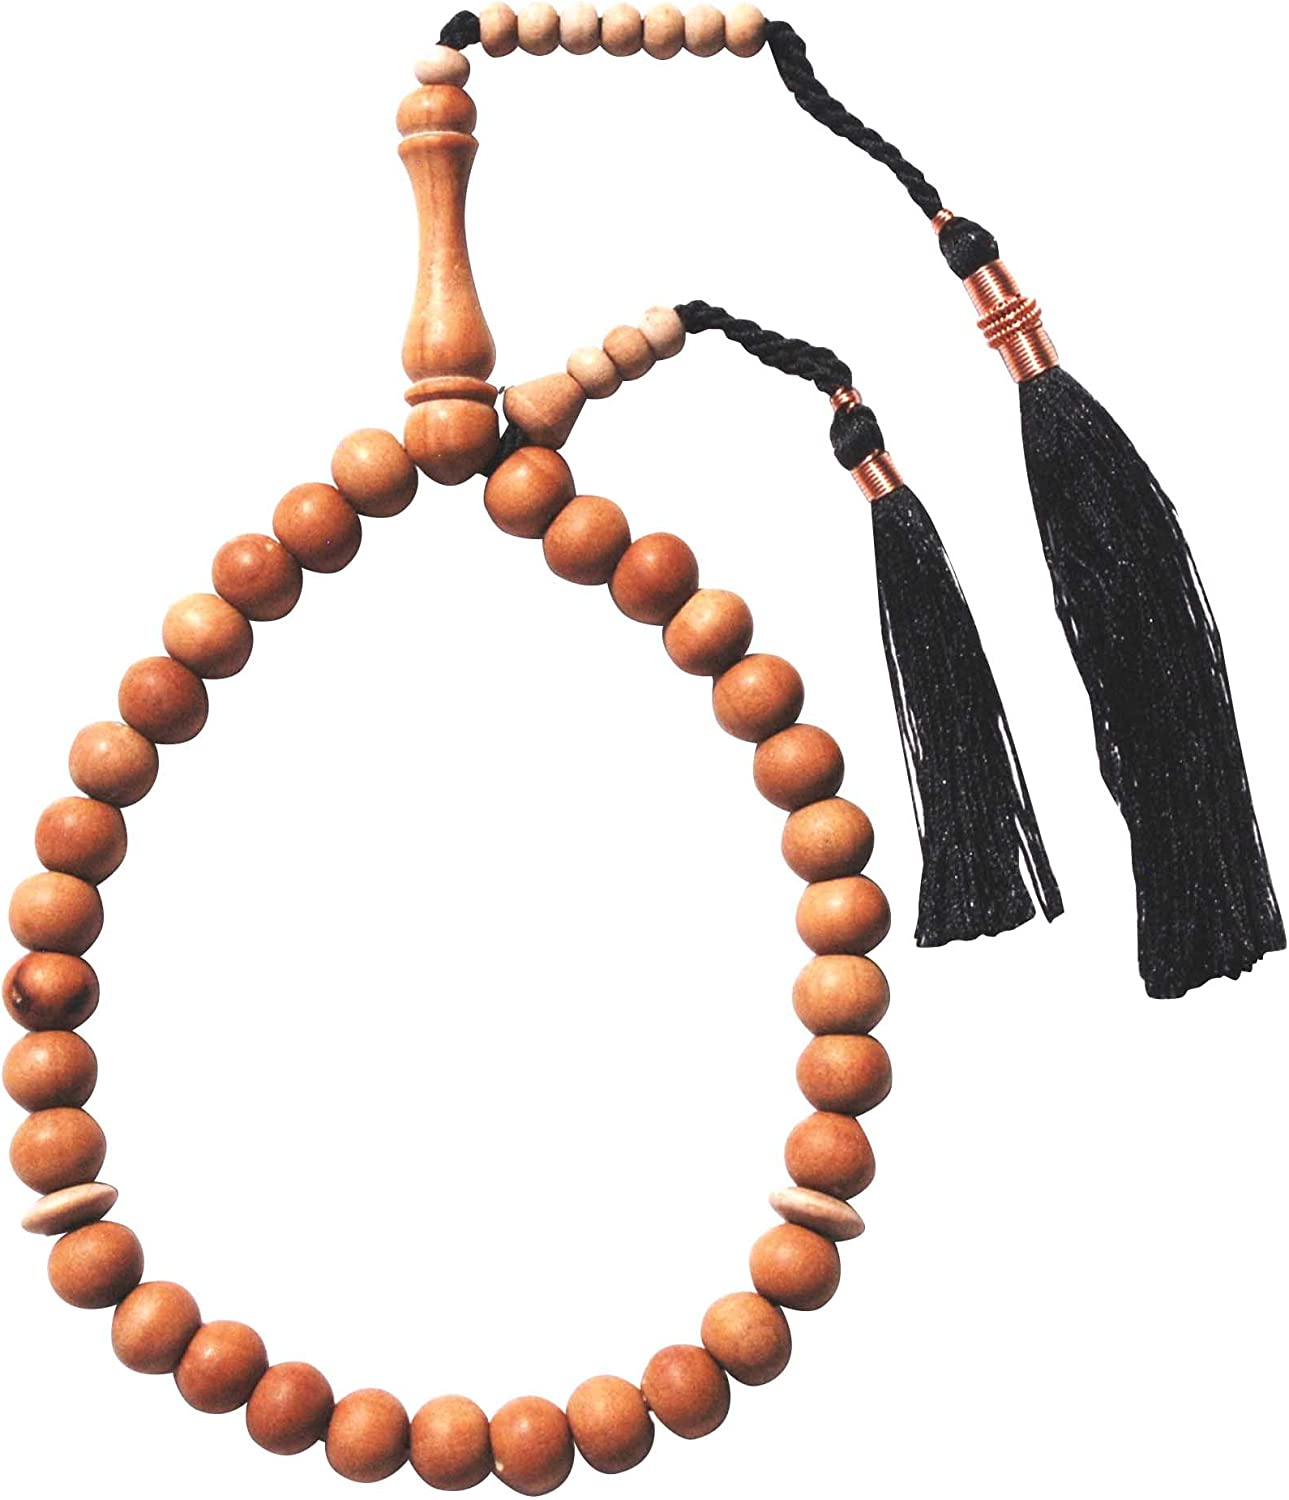 Exotic Beads Small 8mm 33-Bead Sandalwood Tasbih with Black Copper-Decorated Tassels